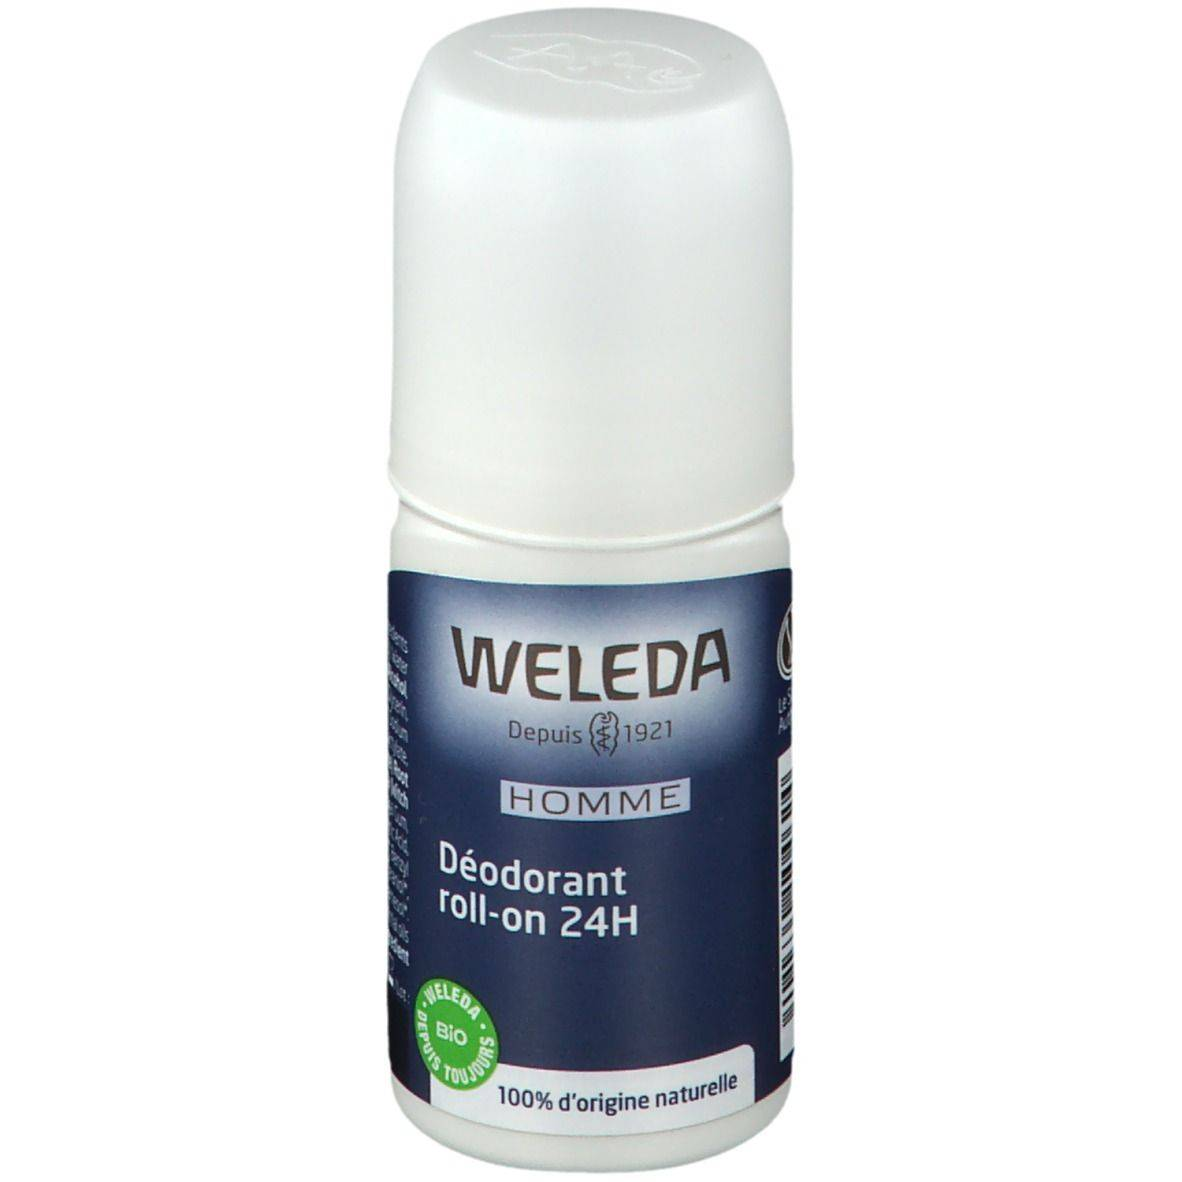 Weleda Homme Déodorant roll-on 24h ml Roller